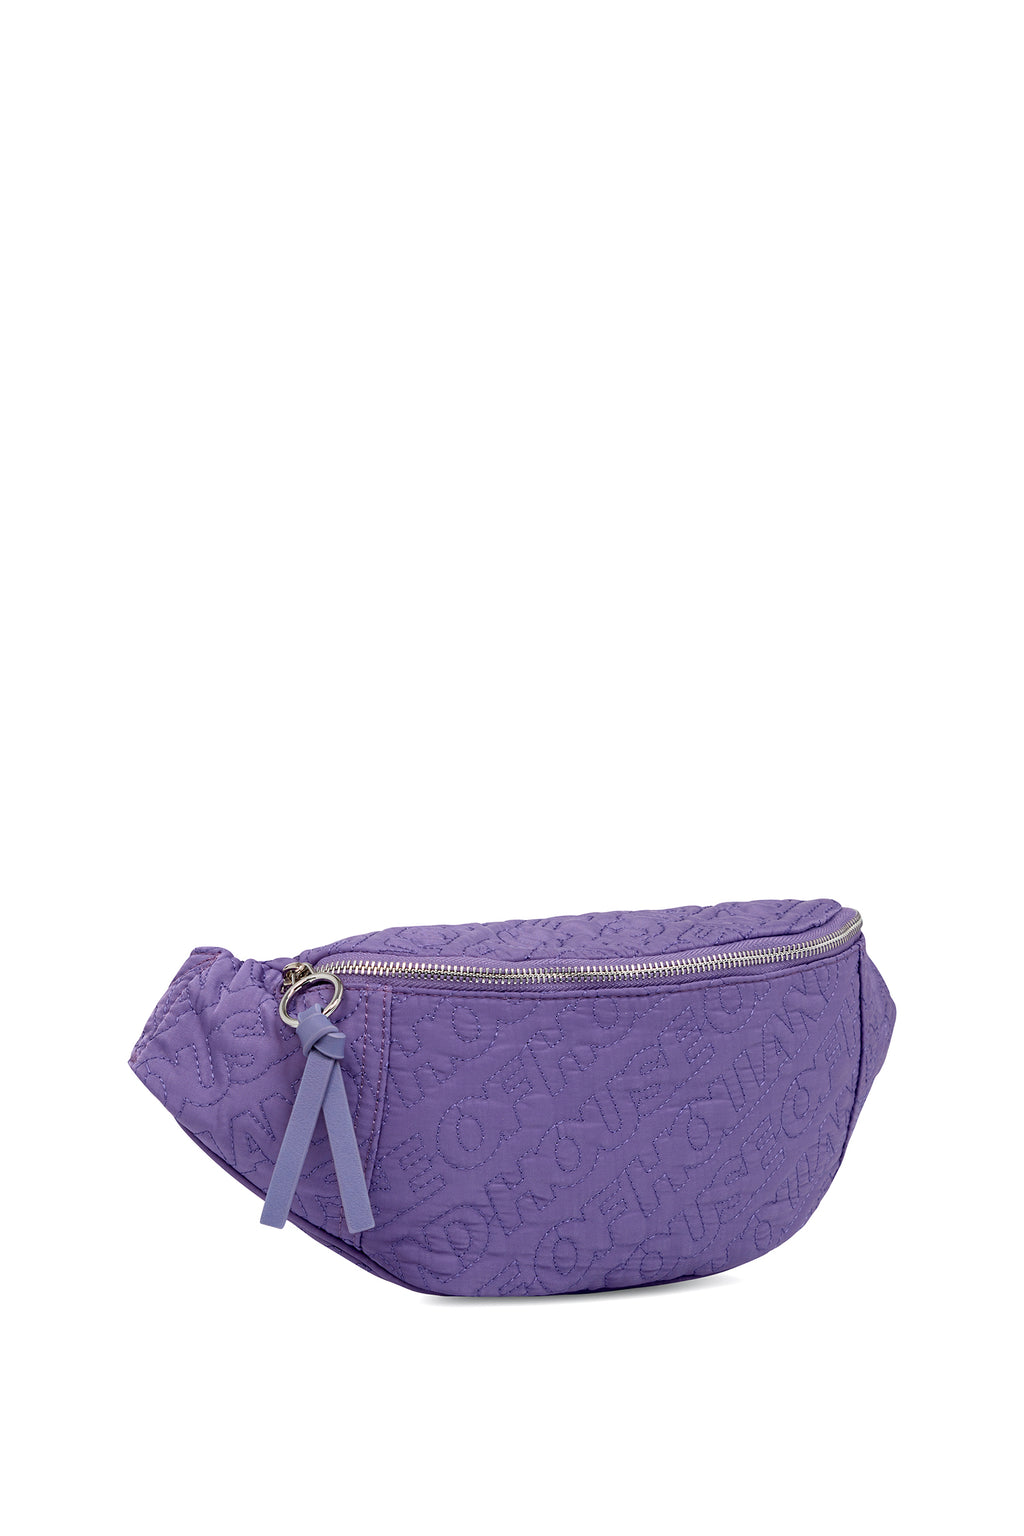 'HOH' Purple Embroidered Belt Bag